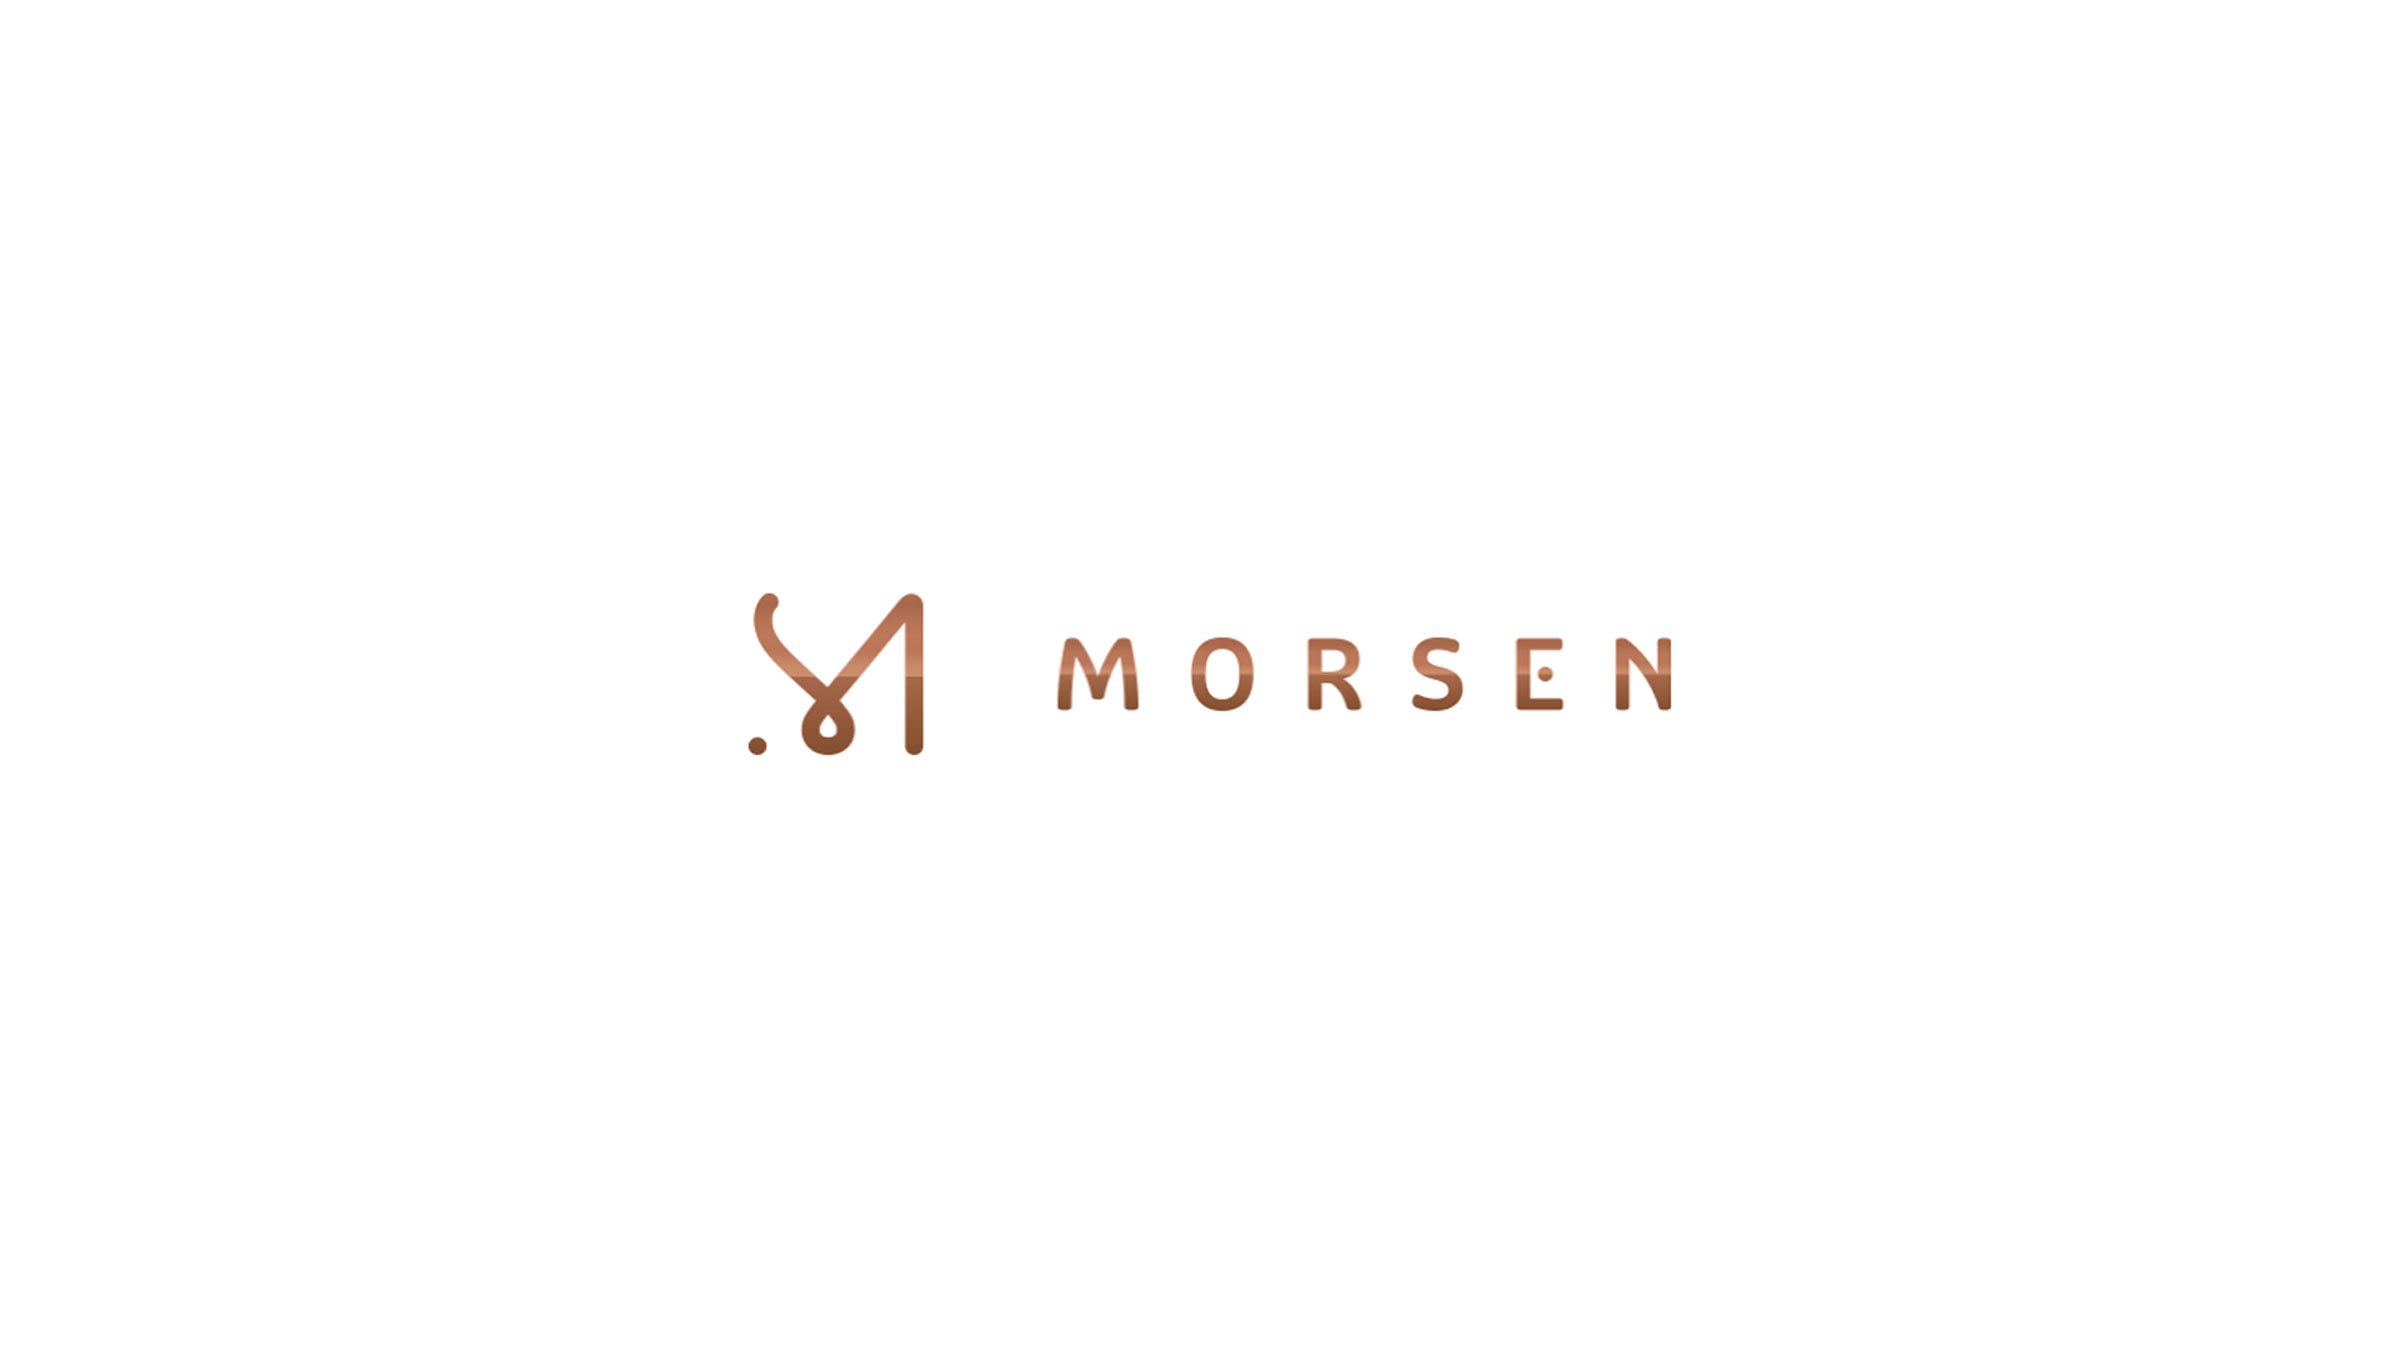 Morson-ReBrand-Website-Copywriting-1.jpg